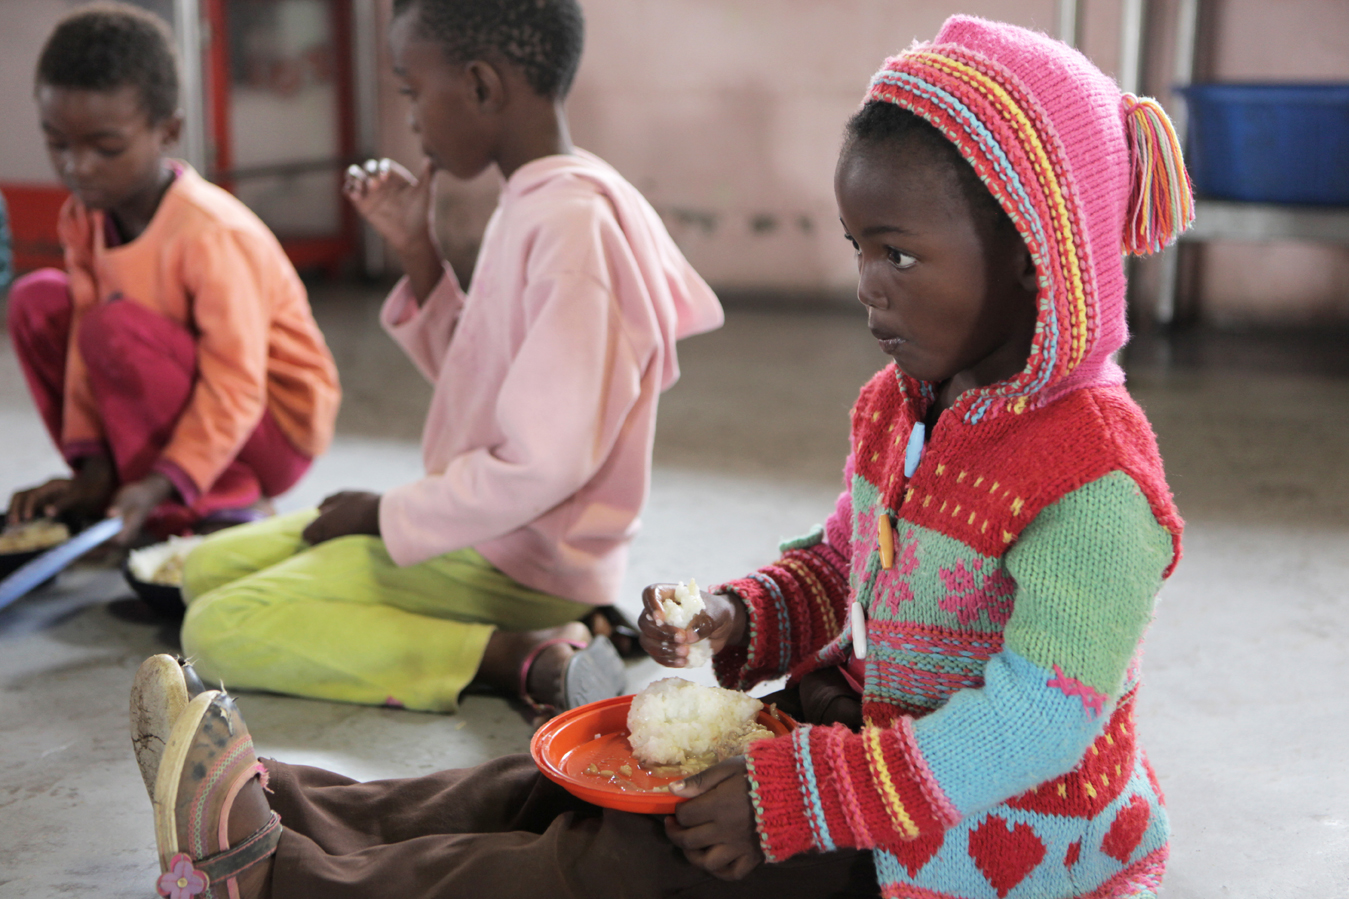 Children at the Save the Children Sizolomphakathi Drop-in Centre in Mpumalanga Province sit to eat a hot meal. Many children in the area live in single-parent households, either due to separated parents, a deceased parent or an absent father. In early 2010, Save the Children recognised the need to open a drop-in centre for children in the area, which now serves over 133 children.